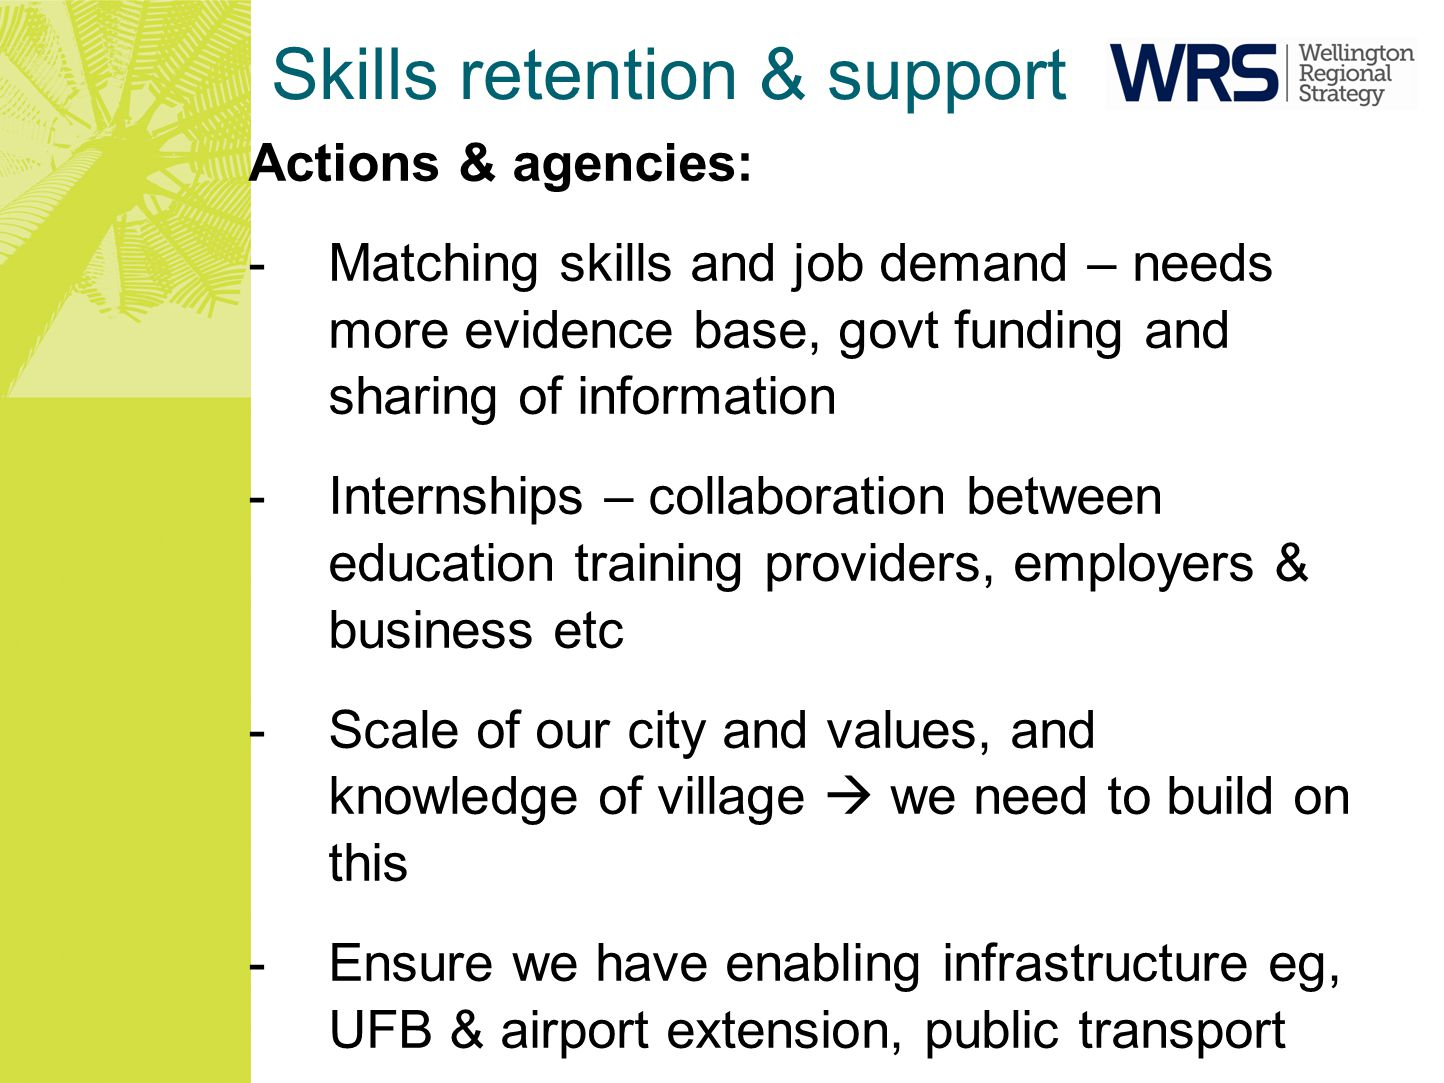 Skills retention & support Actions & agencies: -Matching skills and job demand – needs more evidence base, govt funding and sharing of information -Internships – collaboration between education training providers, employers & business etc -Scale of our city and values, and knowledge of village  we need to build on this -Ensure we have enabling infrastructure eg, UFB & airport extension, public transport